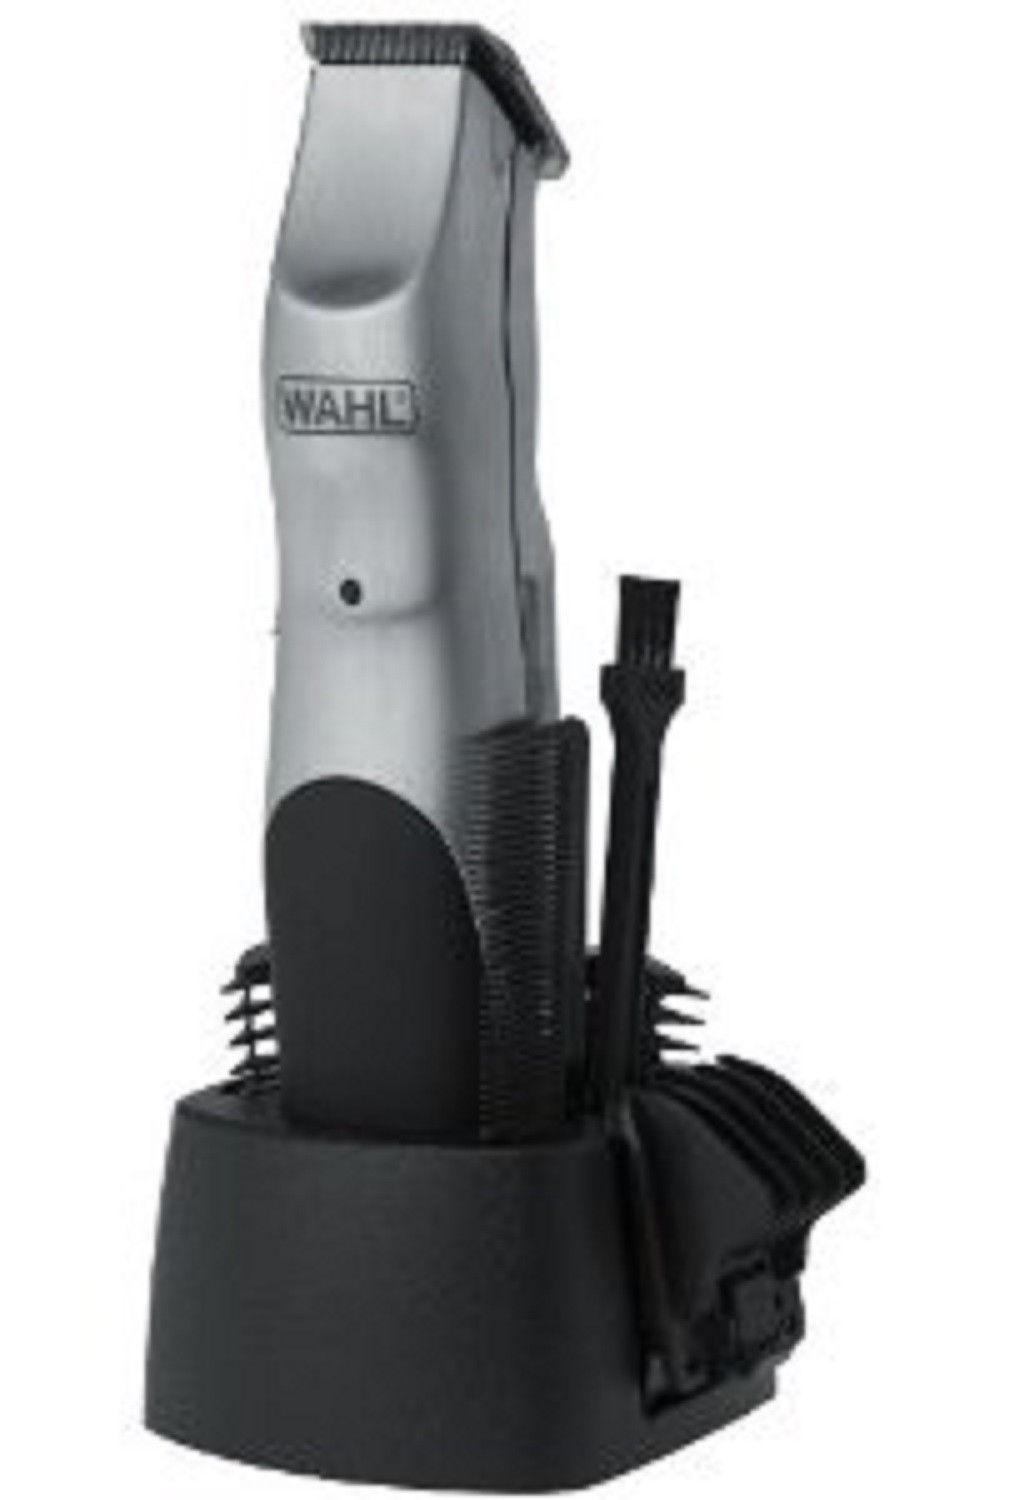 wahl groomsman beard and mustache trimmer cut style hair. Black Bedroom Furniture Sets. Home Design Ideas